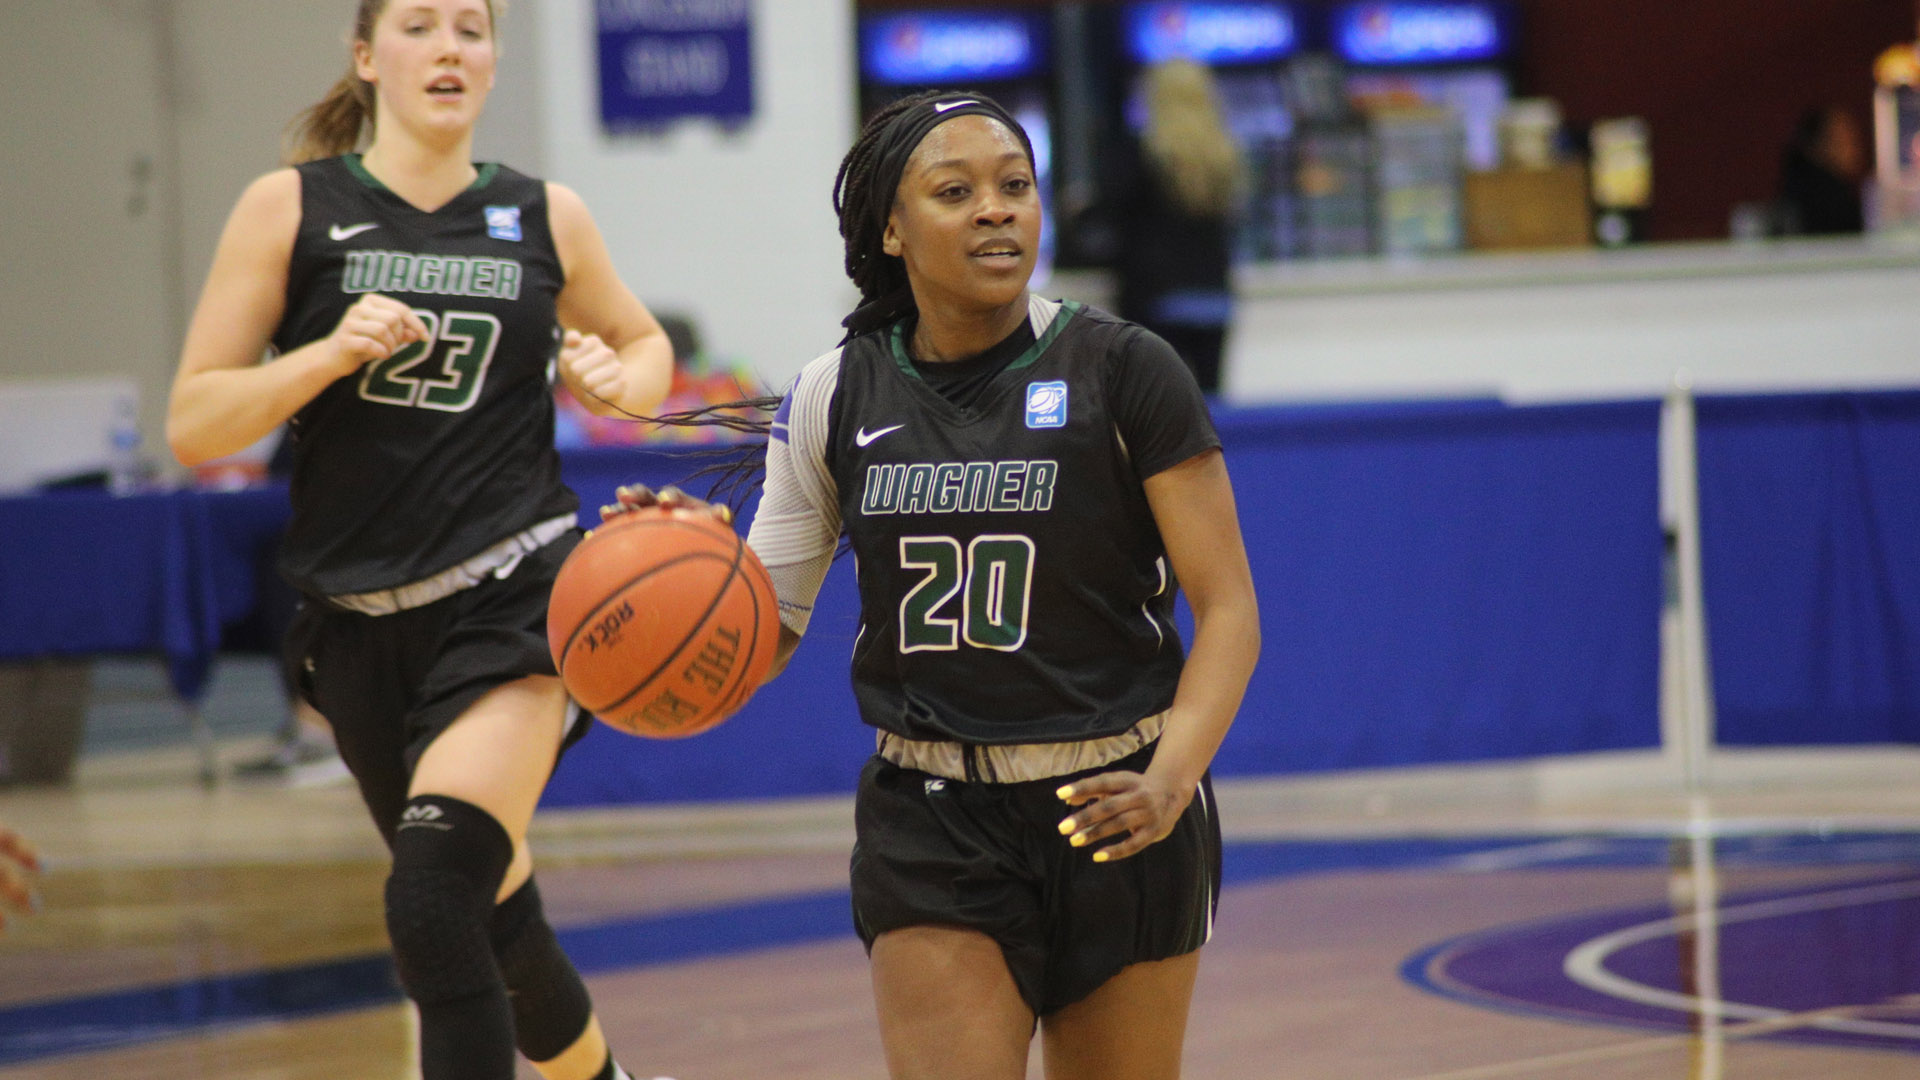 Women's Basketball - Wagner College Athletics